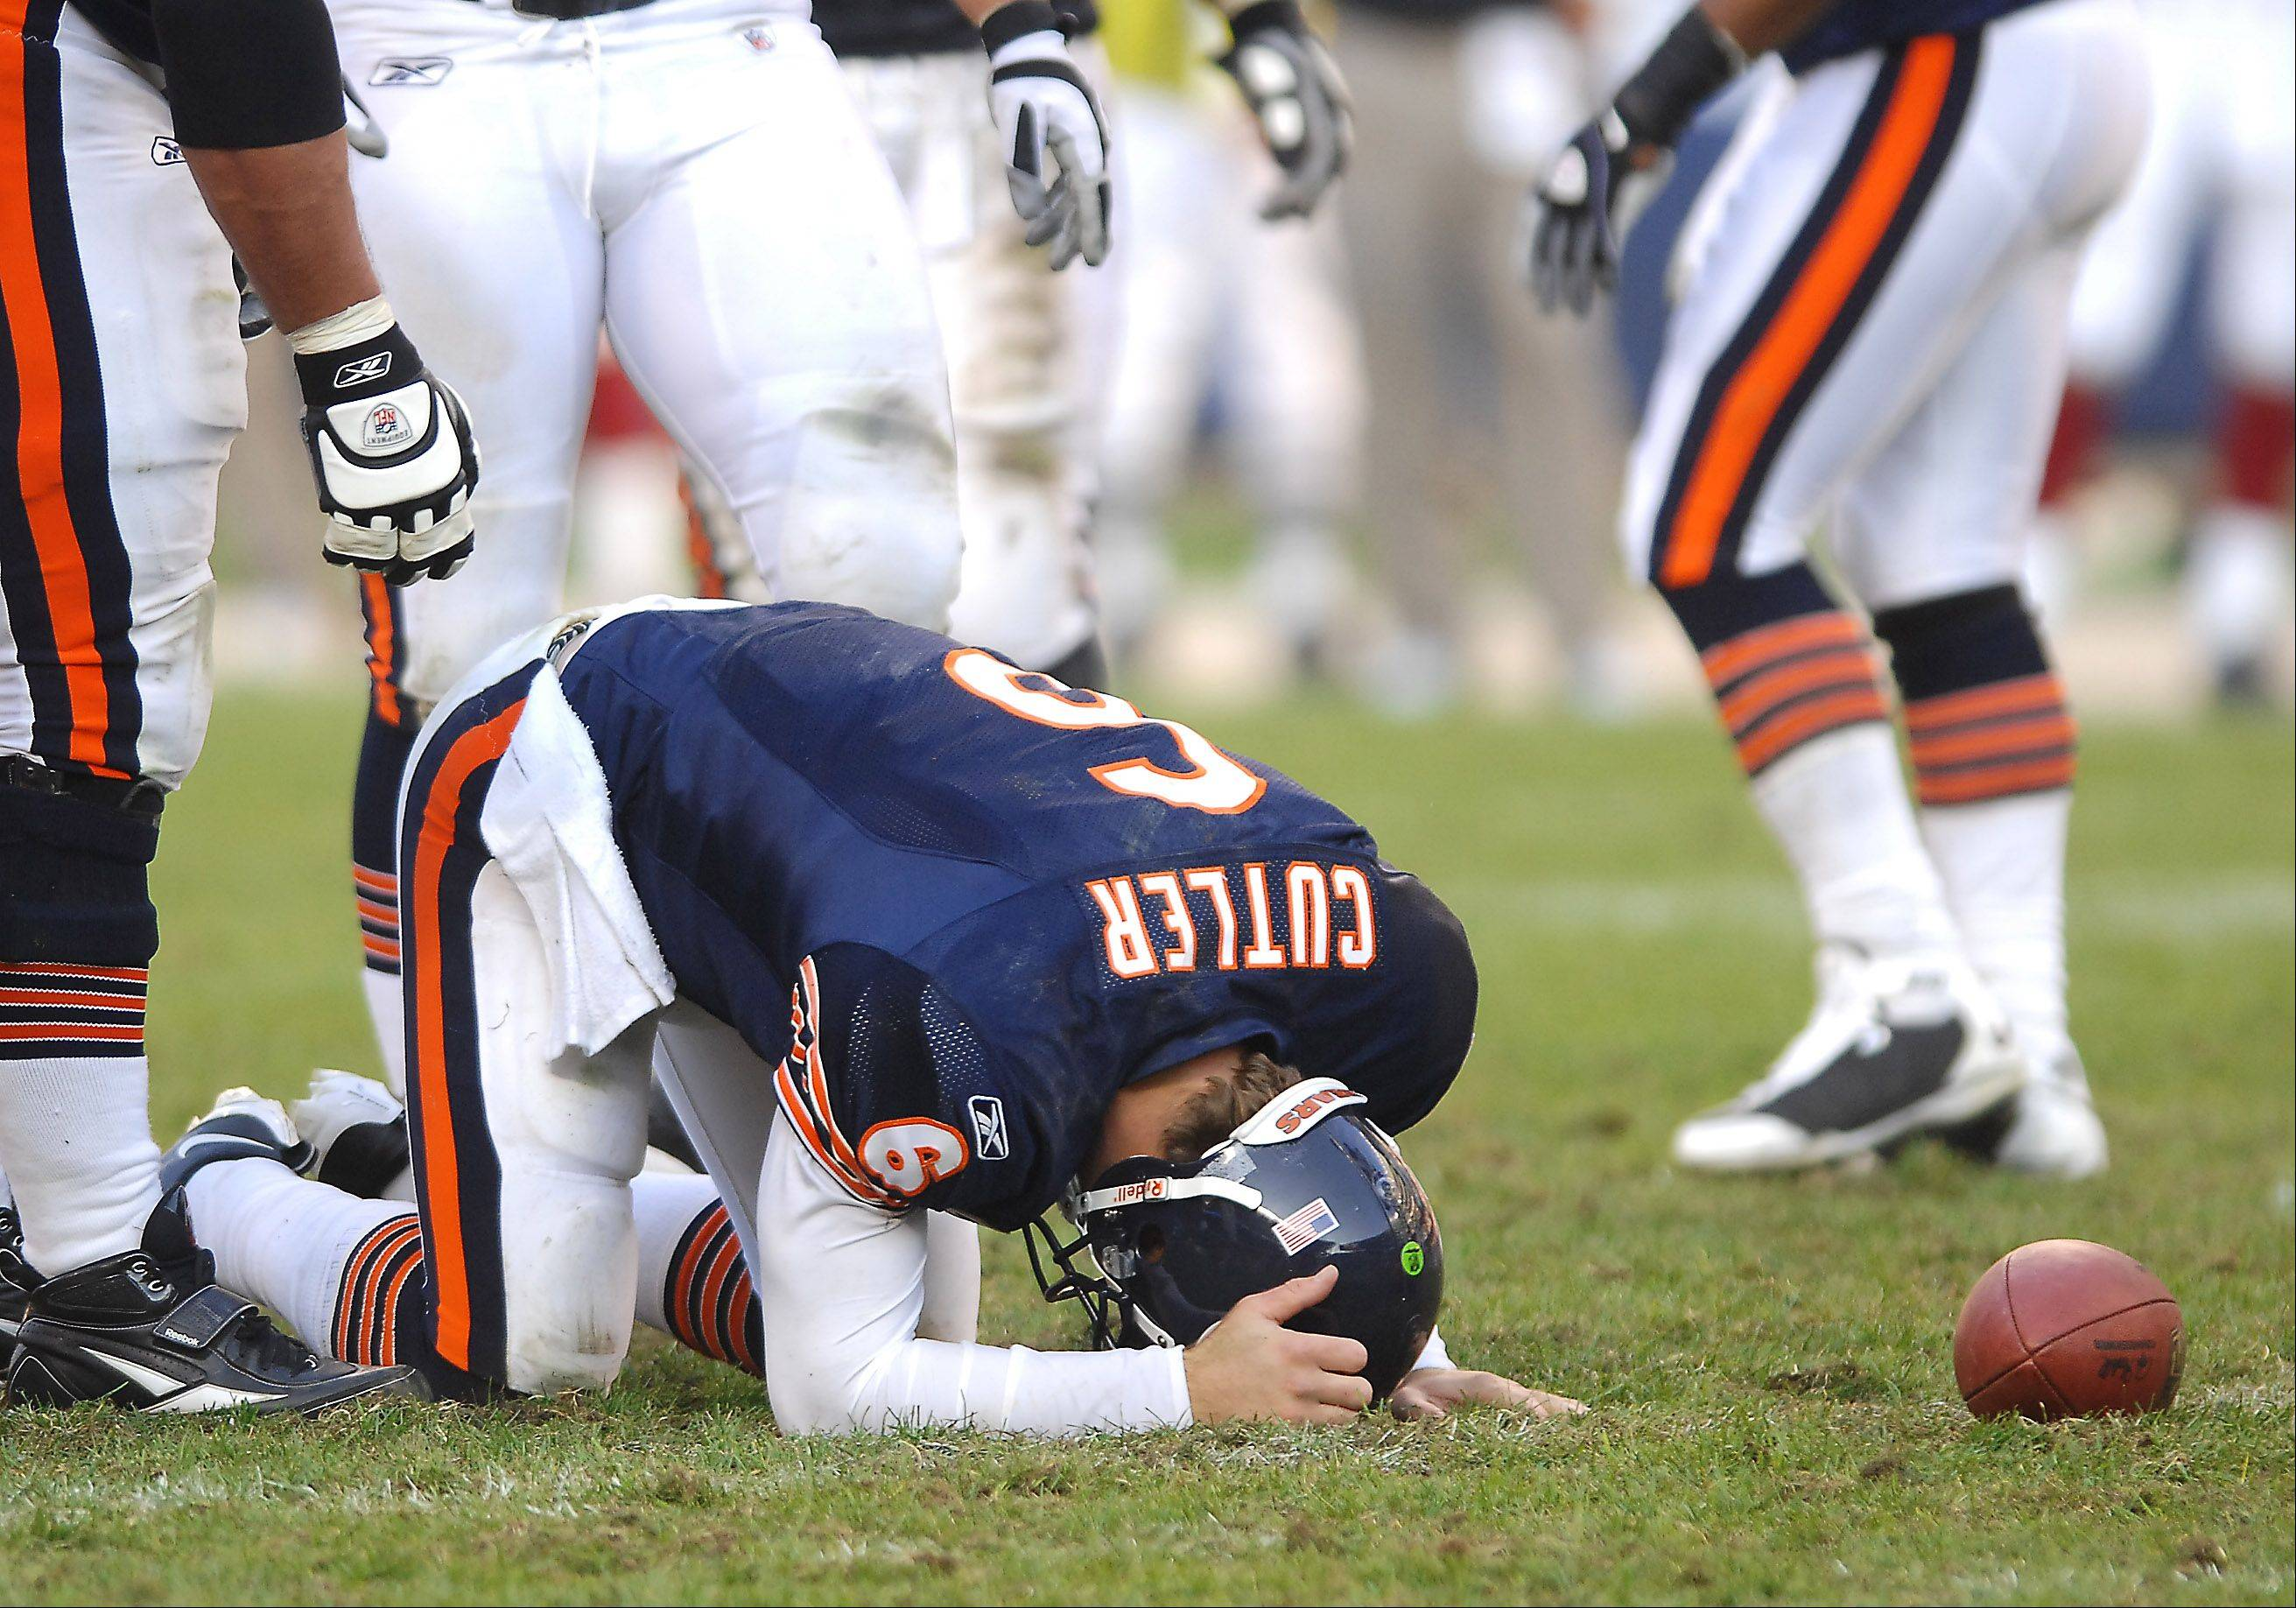 There's much talk in Chicago about the explosive offense the Bears could have with quarterback Jay Cutler and Pro Bowl receiver Brandon Marshall. But when Cutler is sacked at least three times in a game, his career record is 9-15.